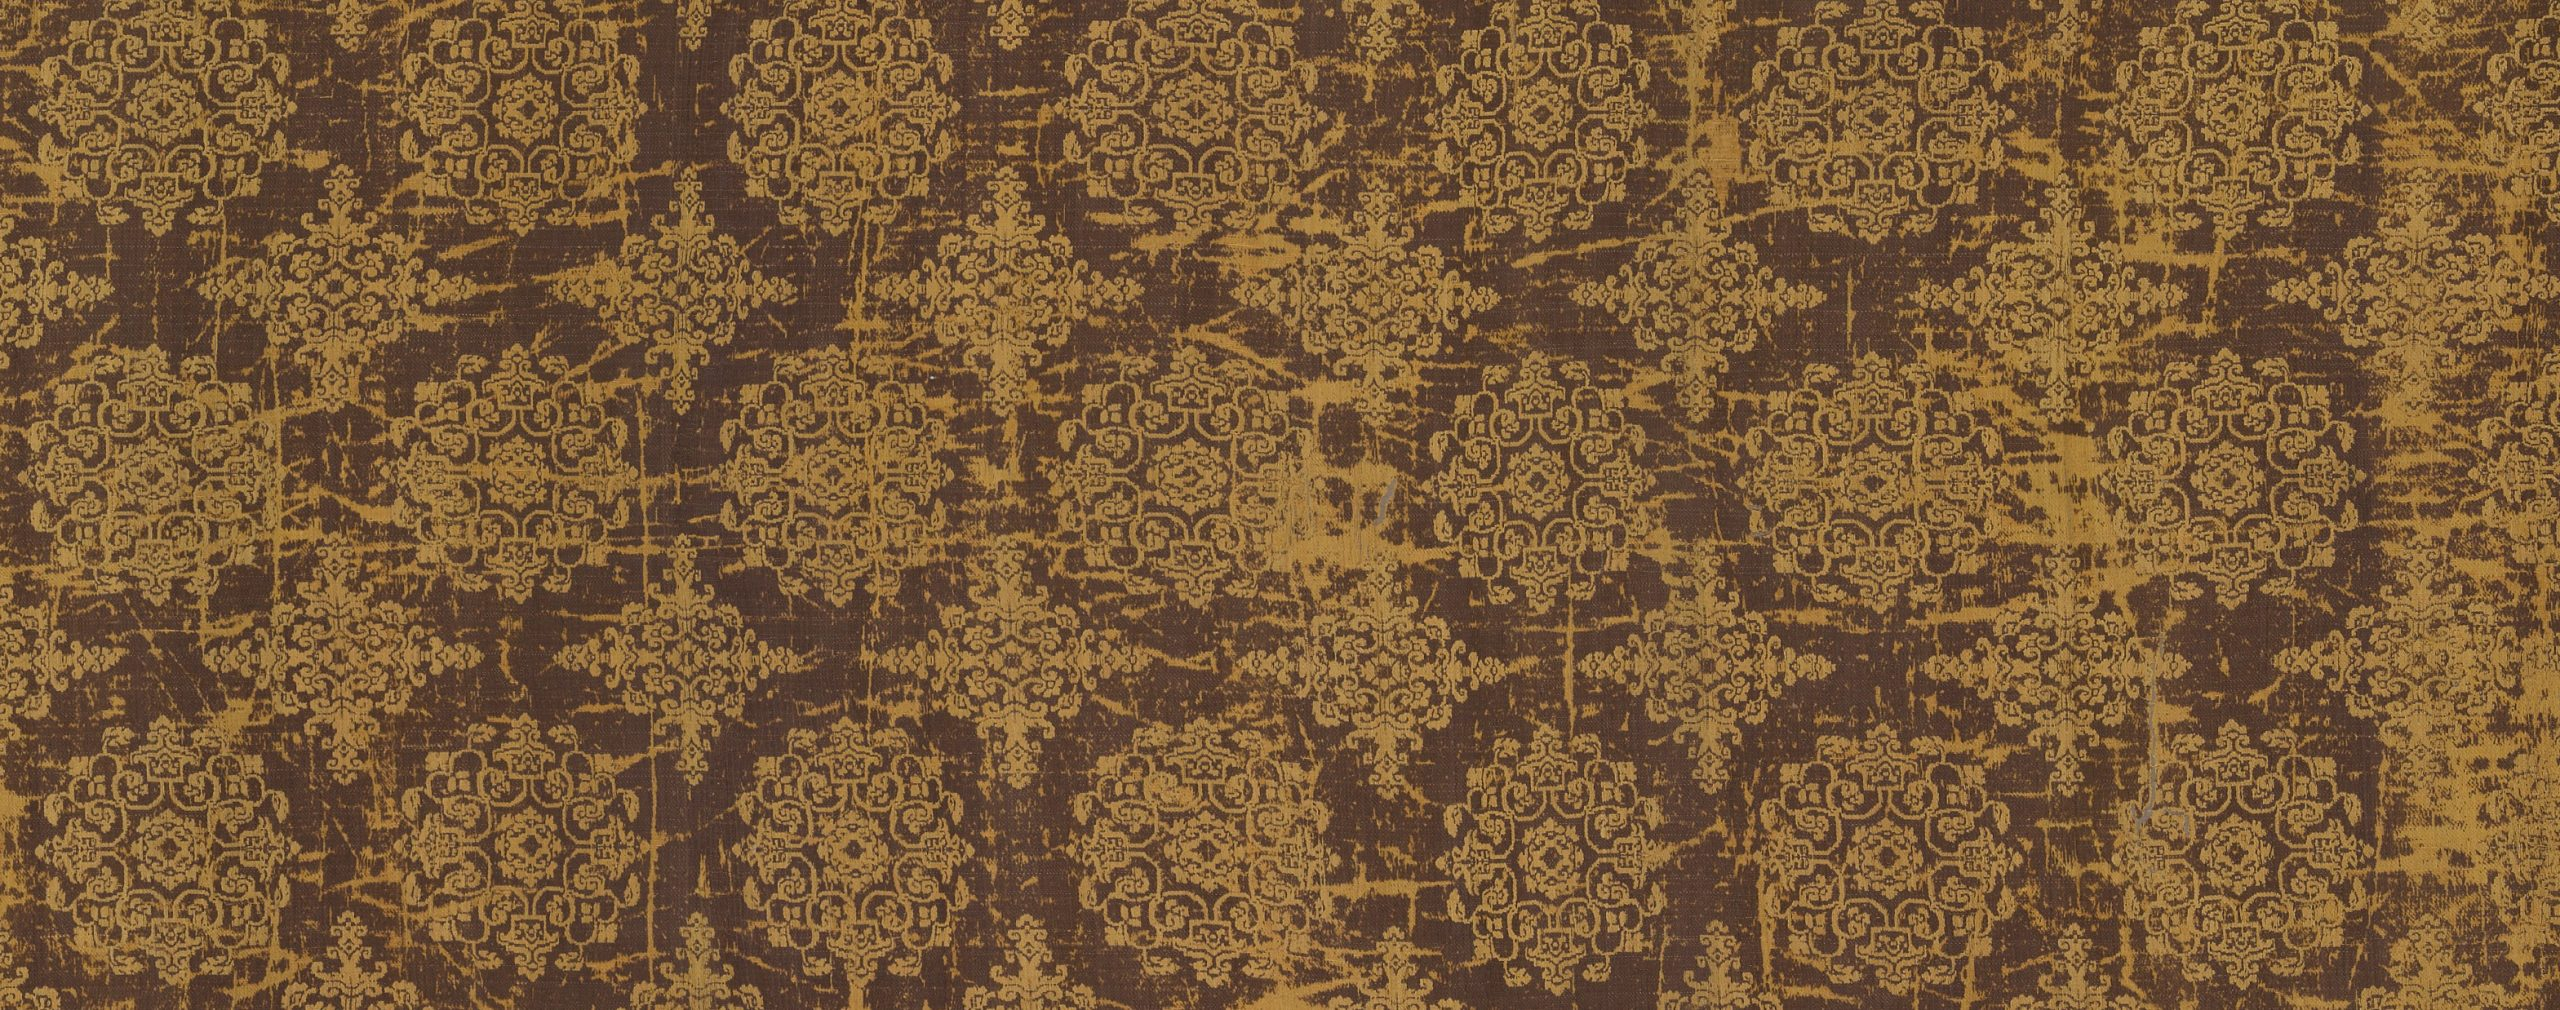 close up detail of gold and red patterned fabric